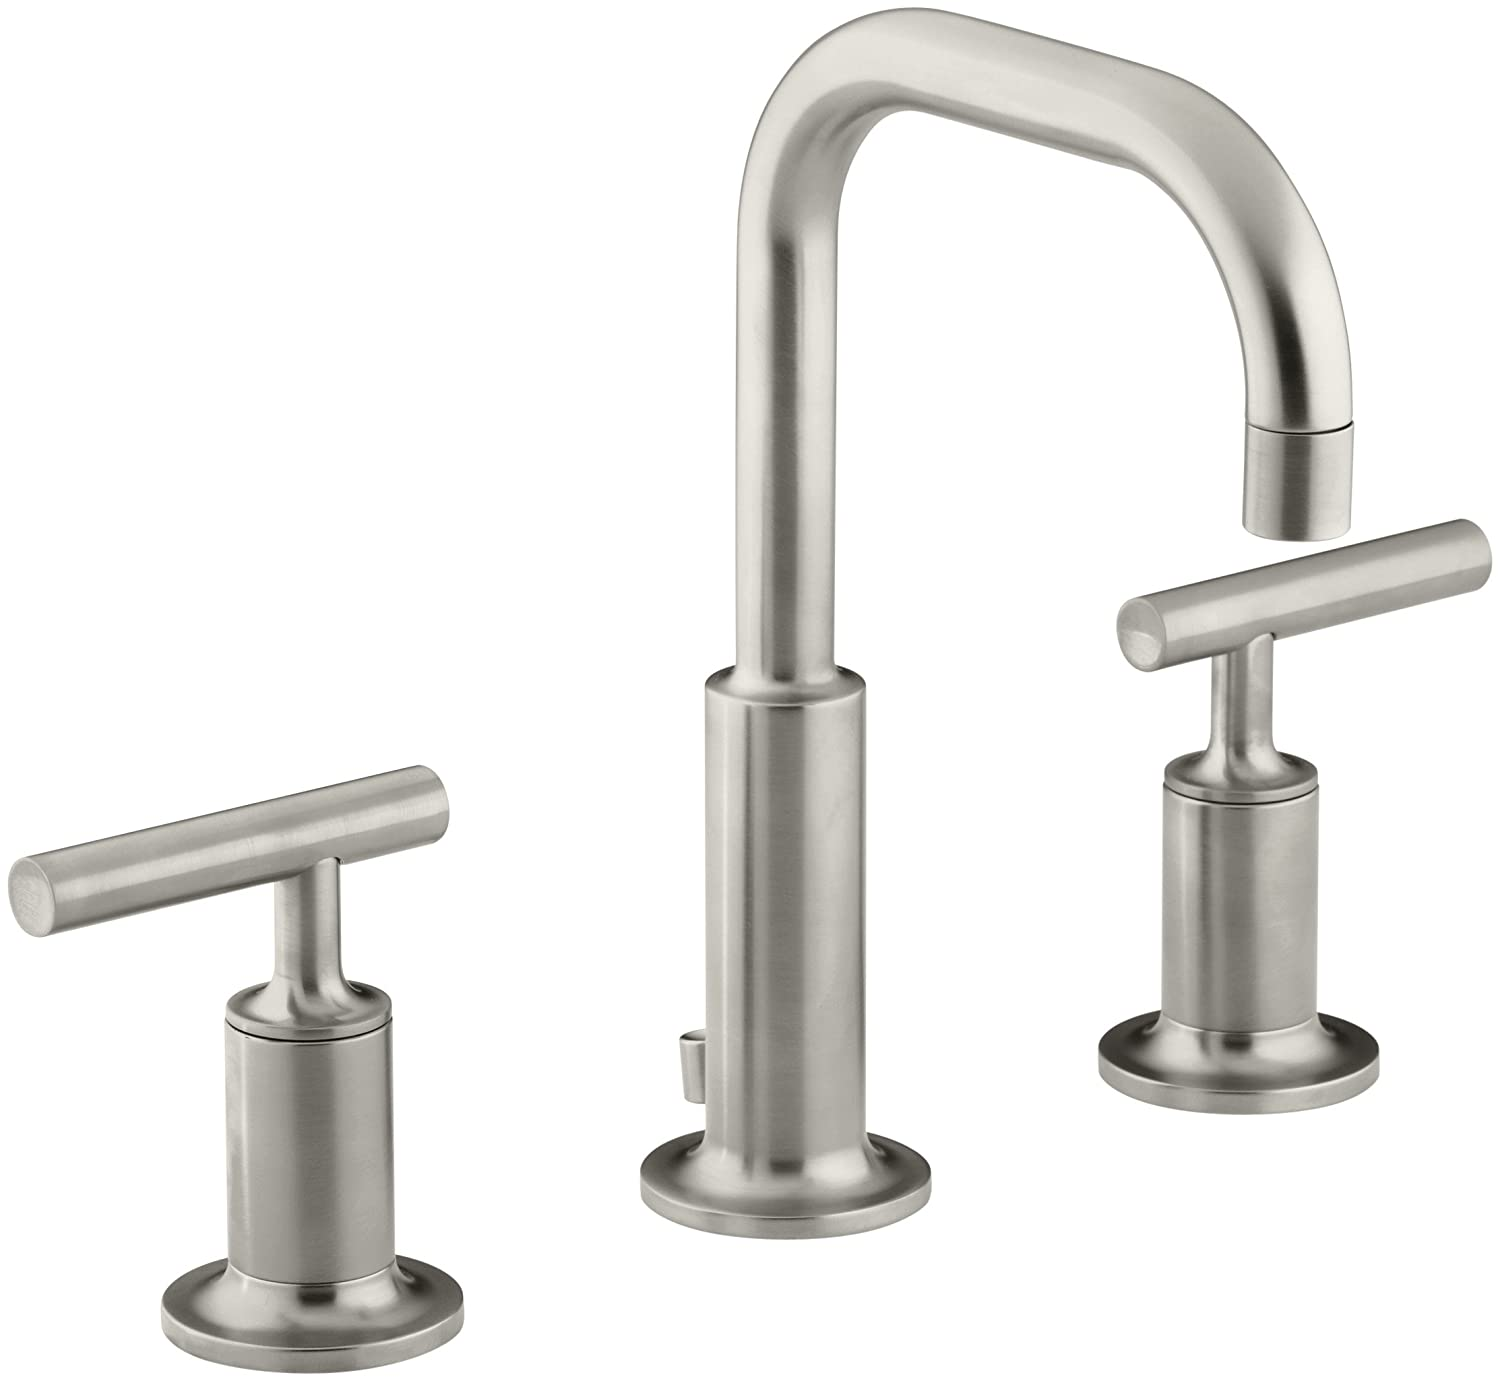 KOHLER Purist K-14406-4-BN Widespread Bathroom Sink Faucet with Metal Drain Assembly in Brushed Nickel